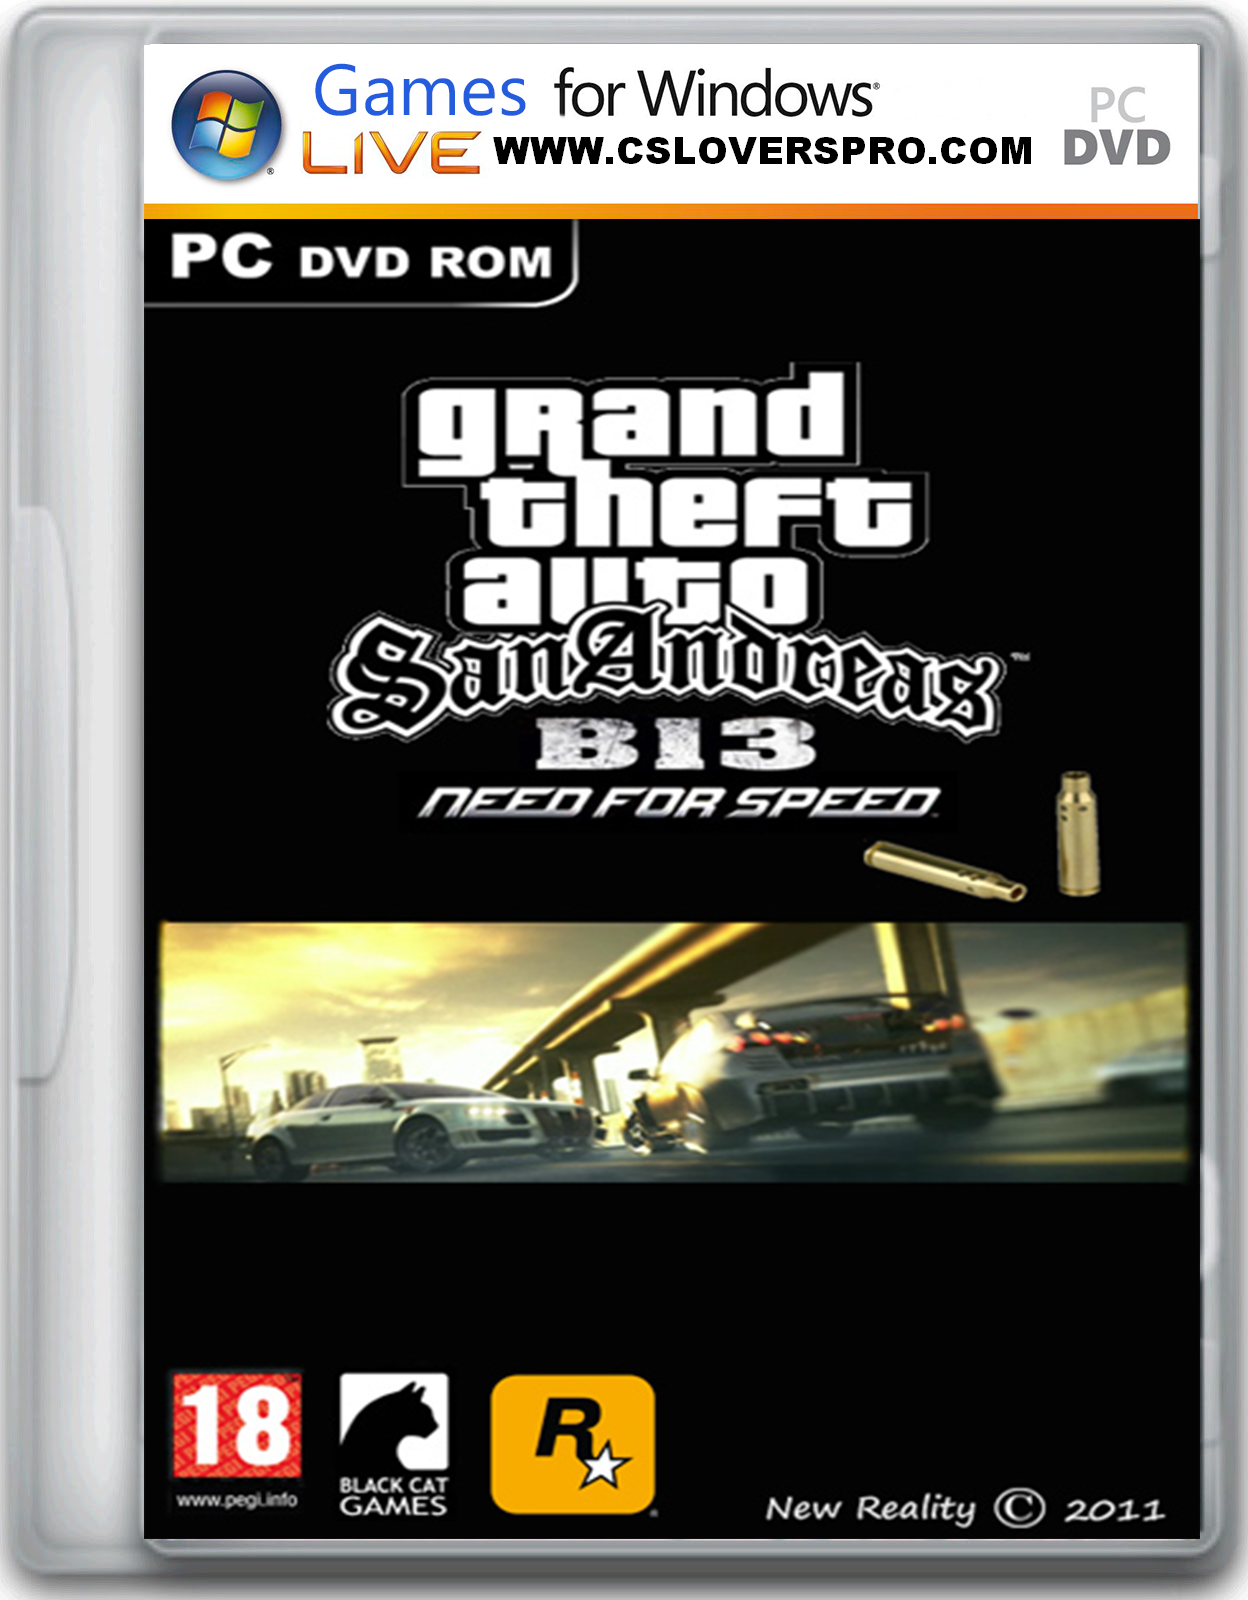 TÉLÉCHARGER GTA SAN ANDREAS B13 NEED FOR SPEED 2011